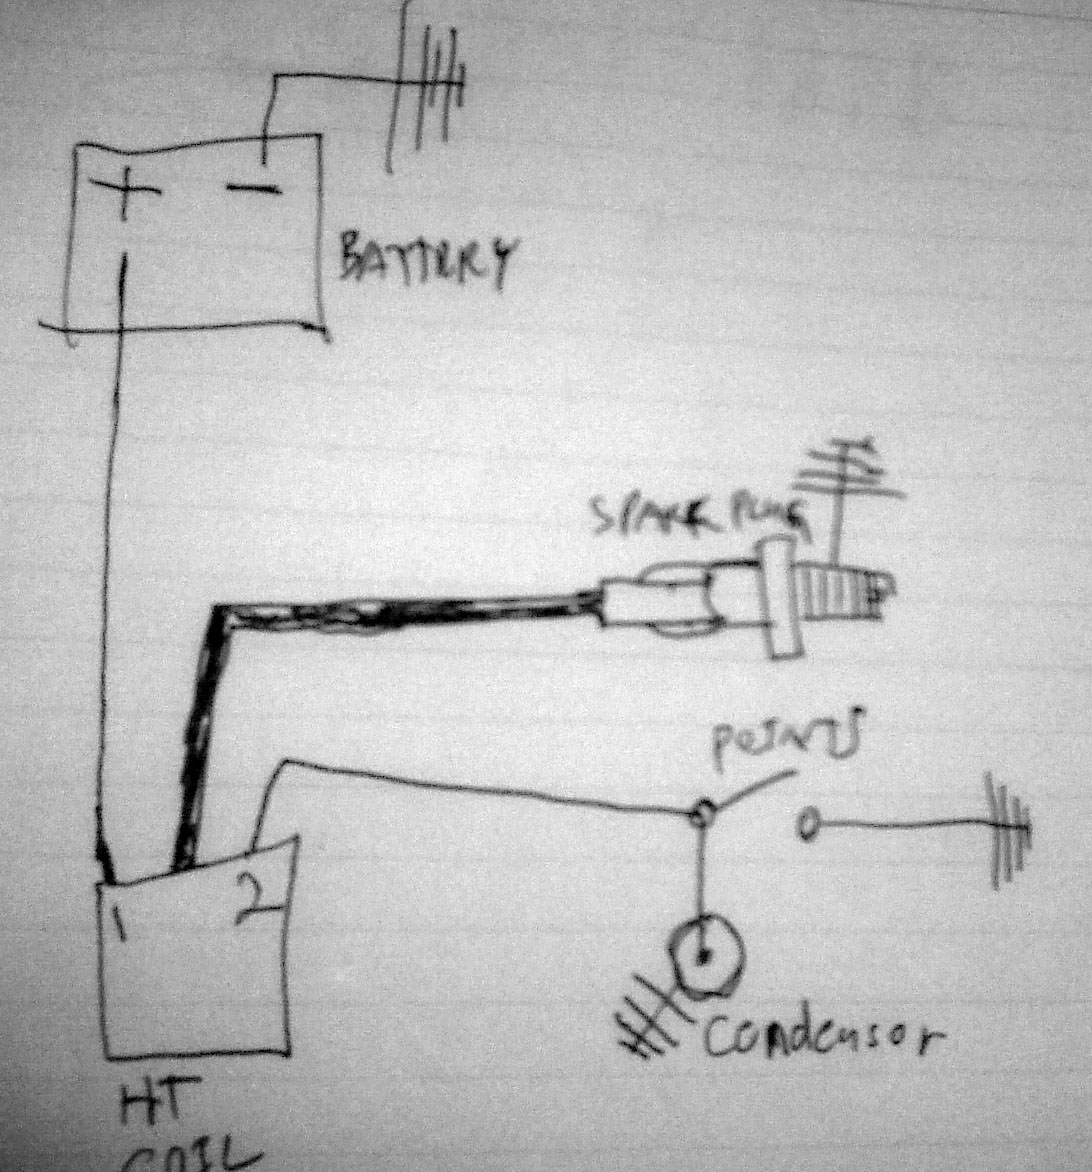 Modern Vespa Spark Question Wiring Diagram Vl1 Make Sure That You Have All Of The Components And Wires In This Picture